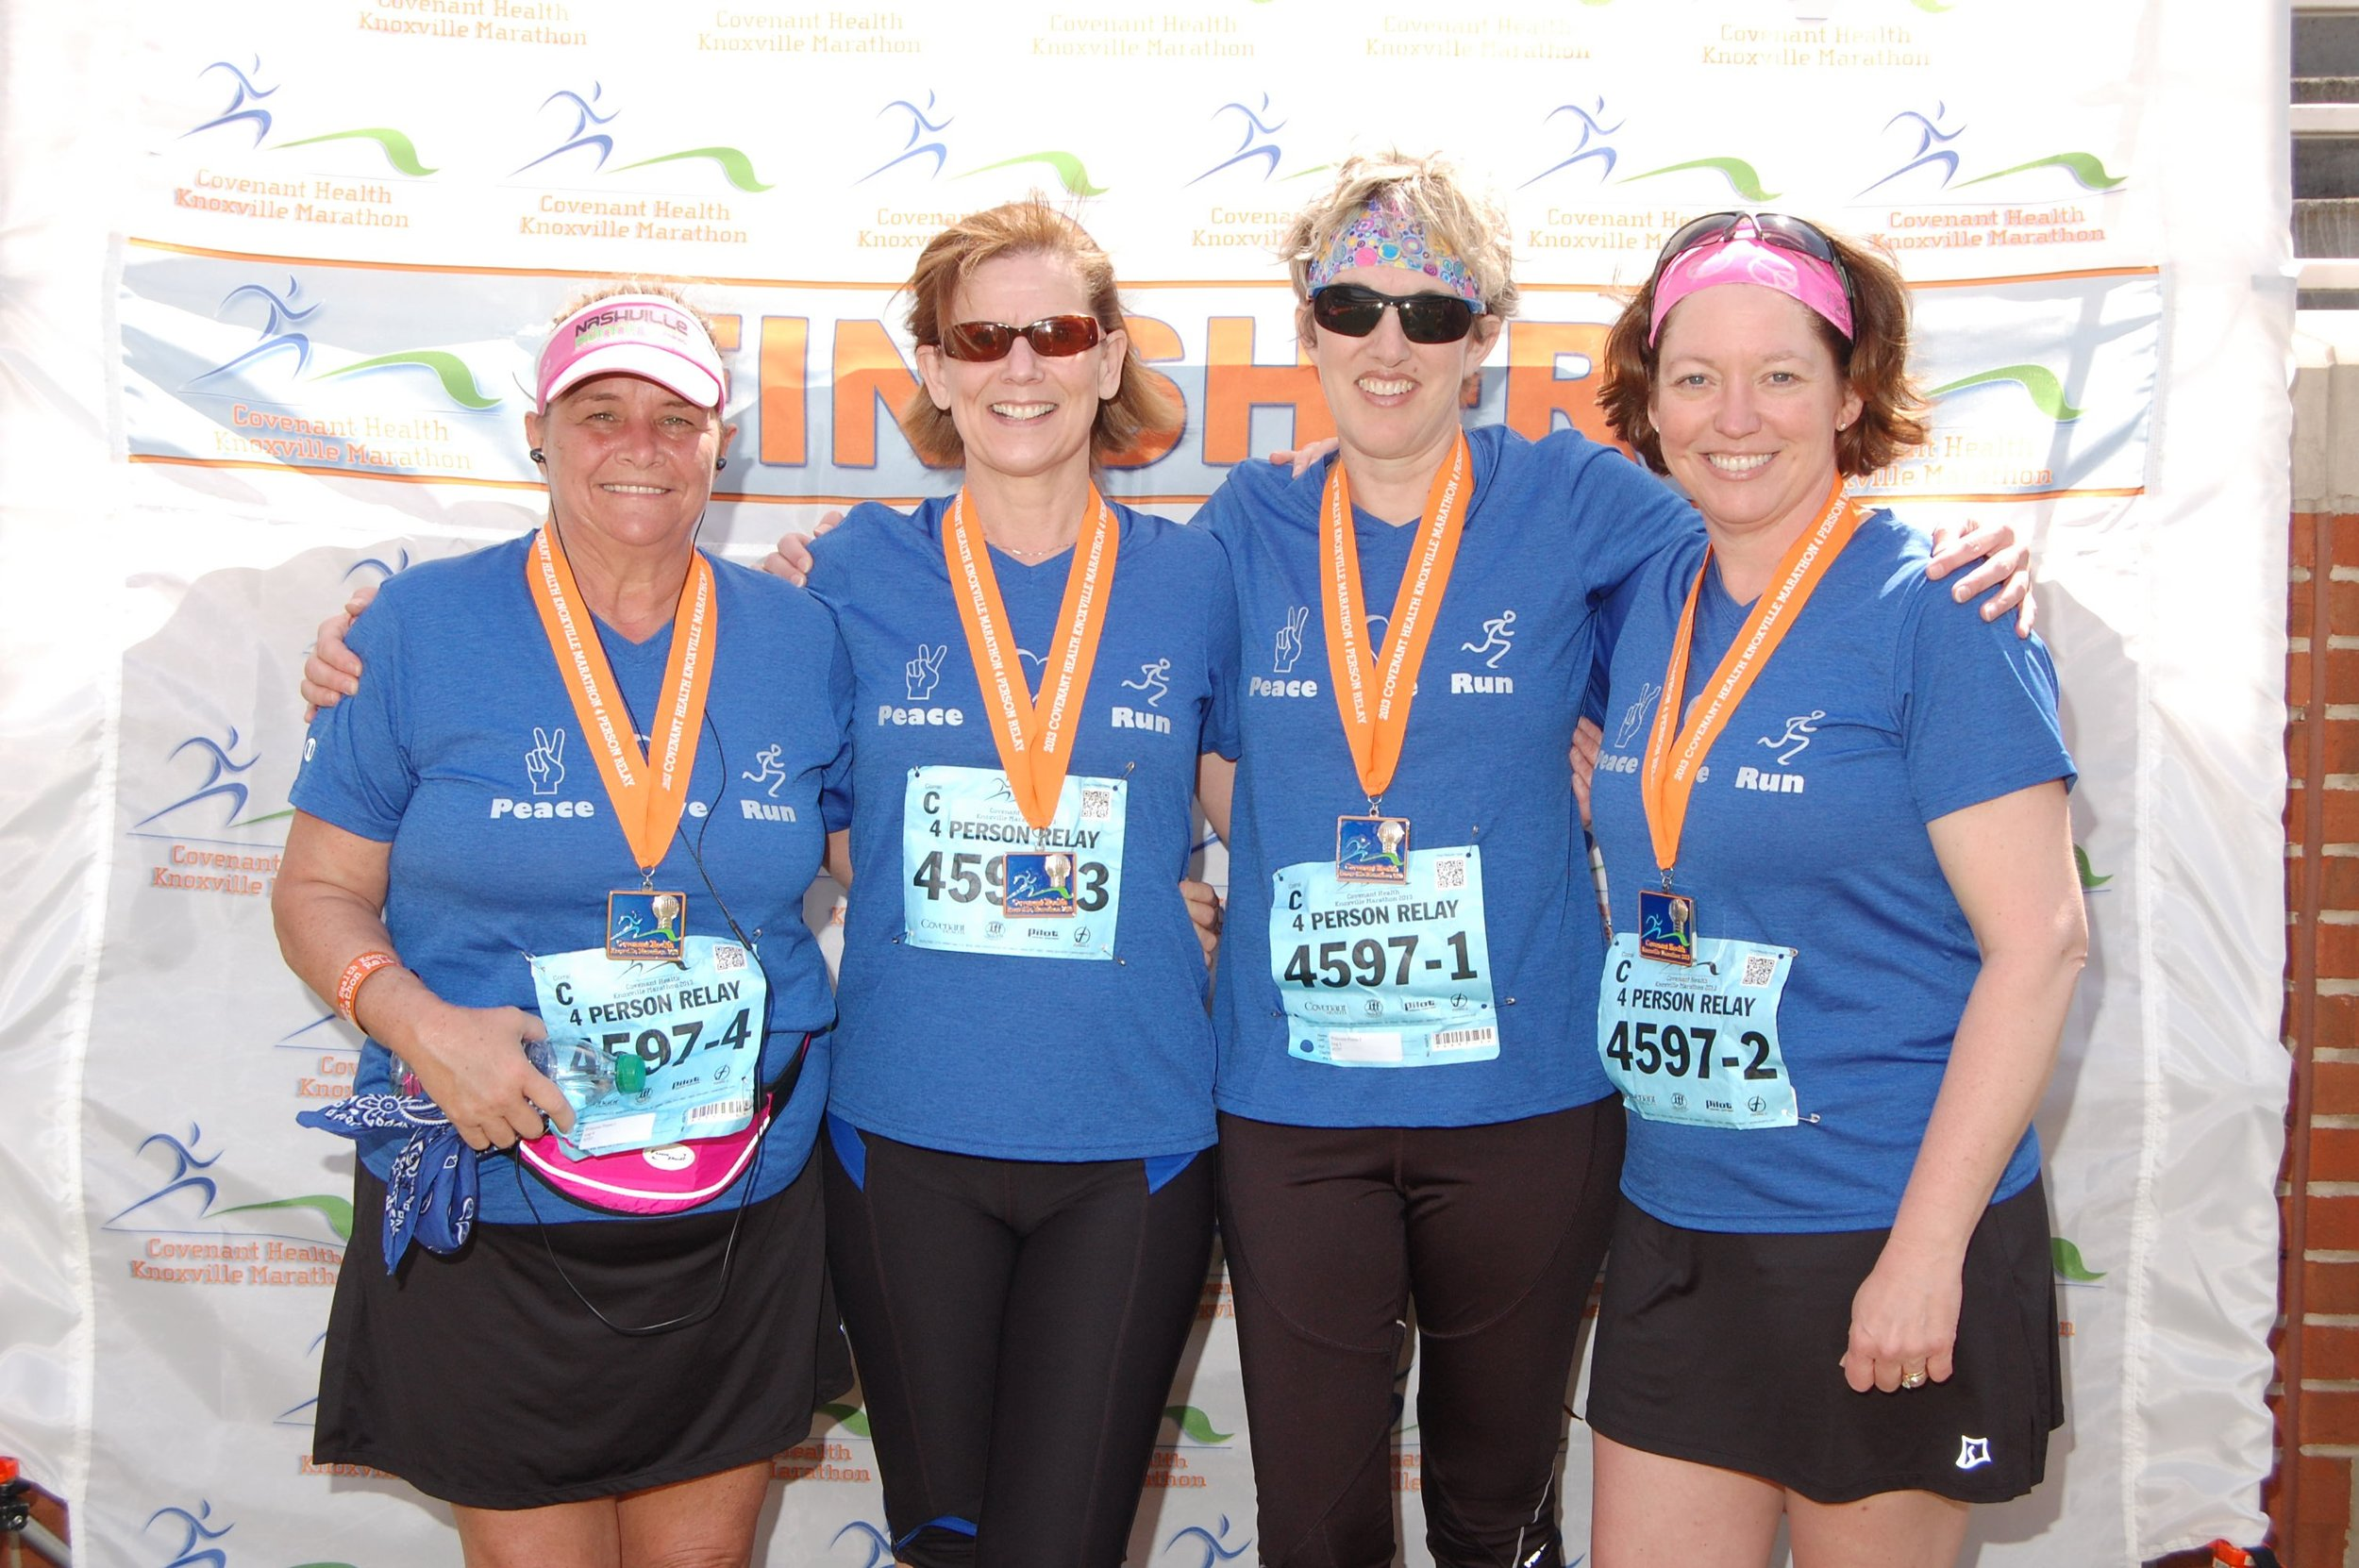 Knoxville_finish_all -- Knoxville Marathon Relay team with Susan Malone, Glenda Crowder and Peggy Stanfield